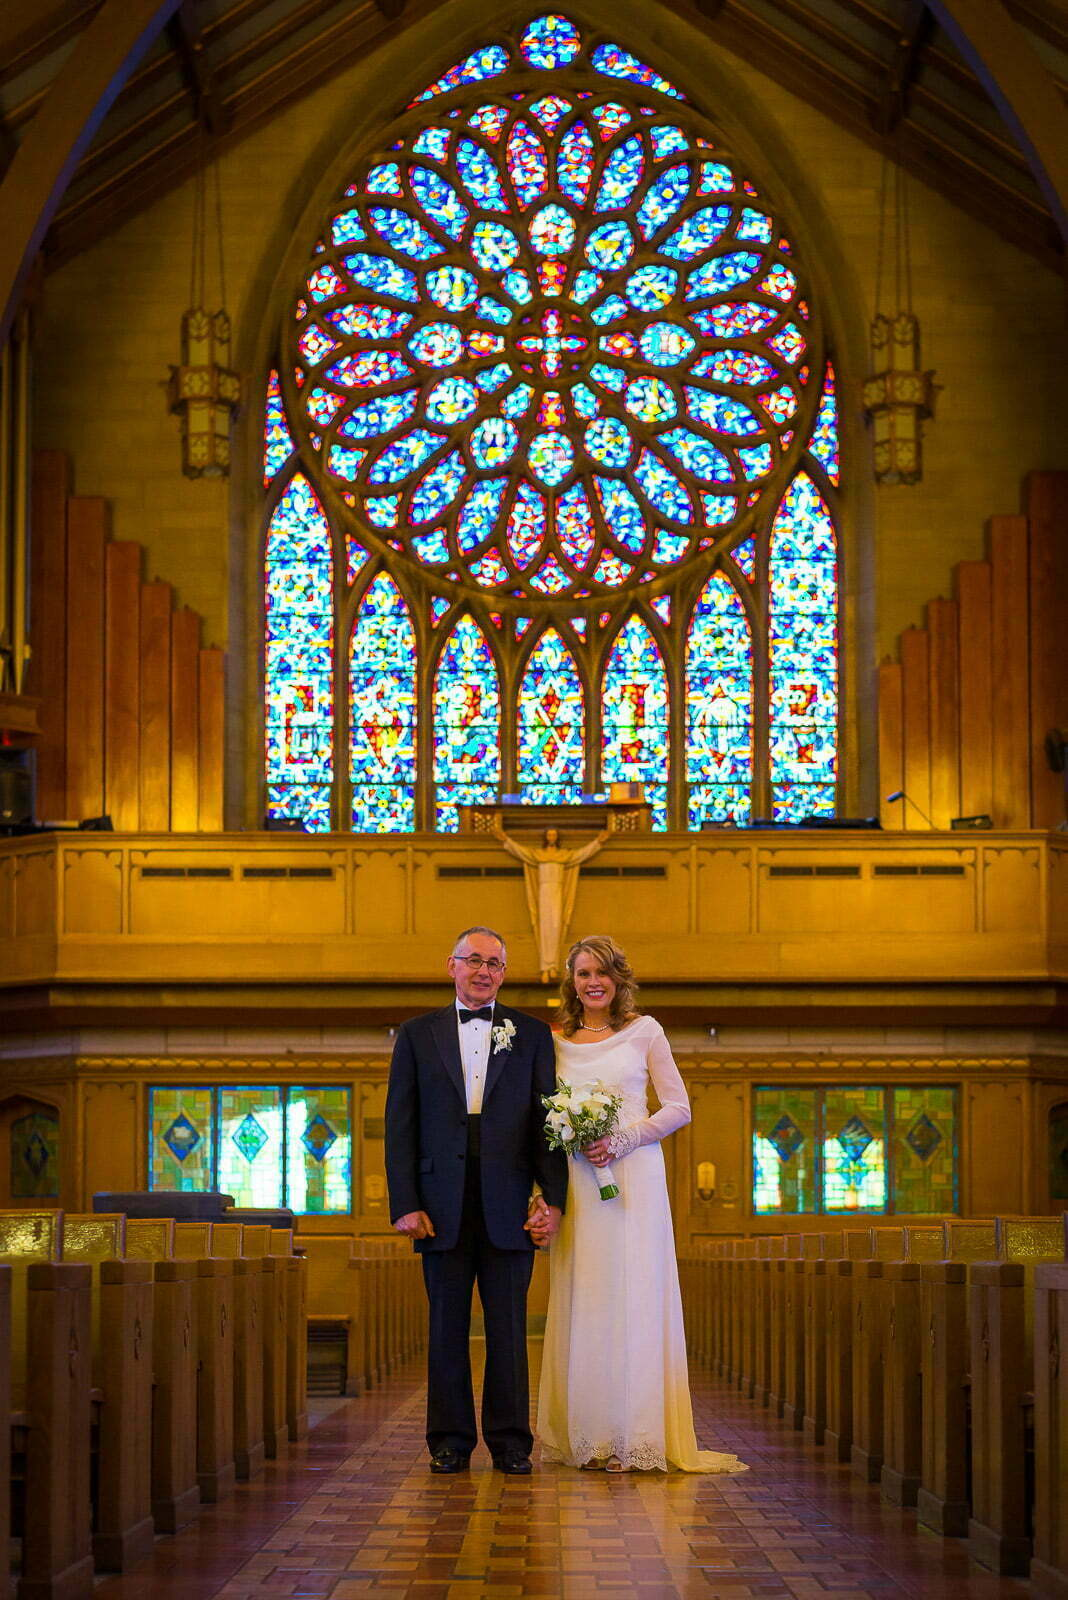 Wedding Photography @ Saint Paul's Church, Princeton